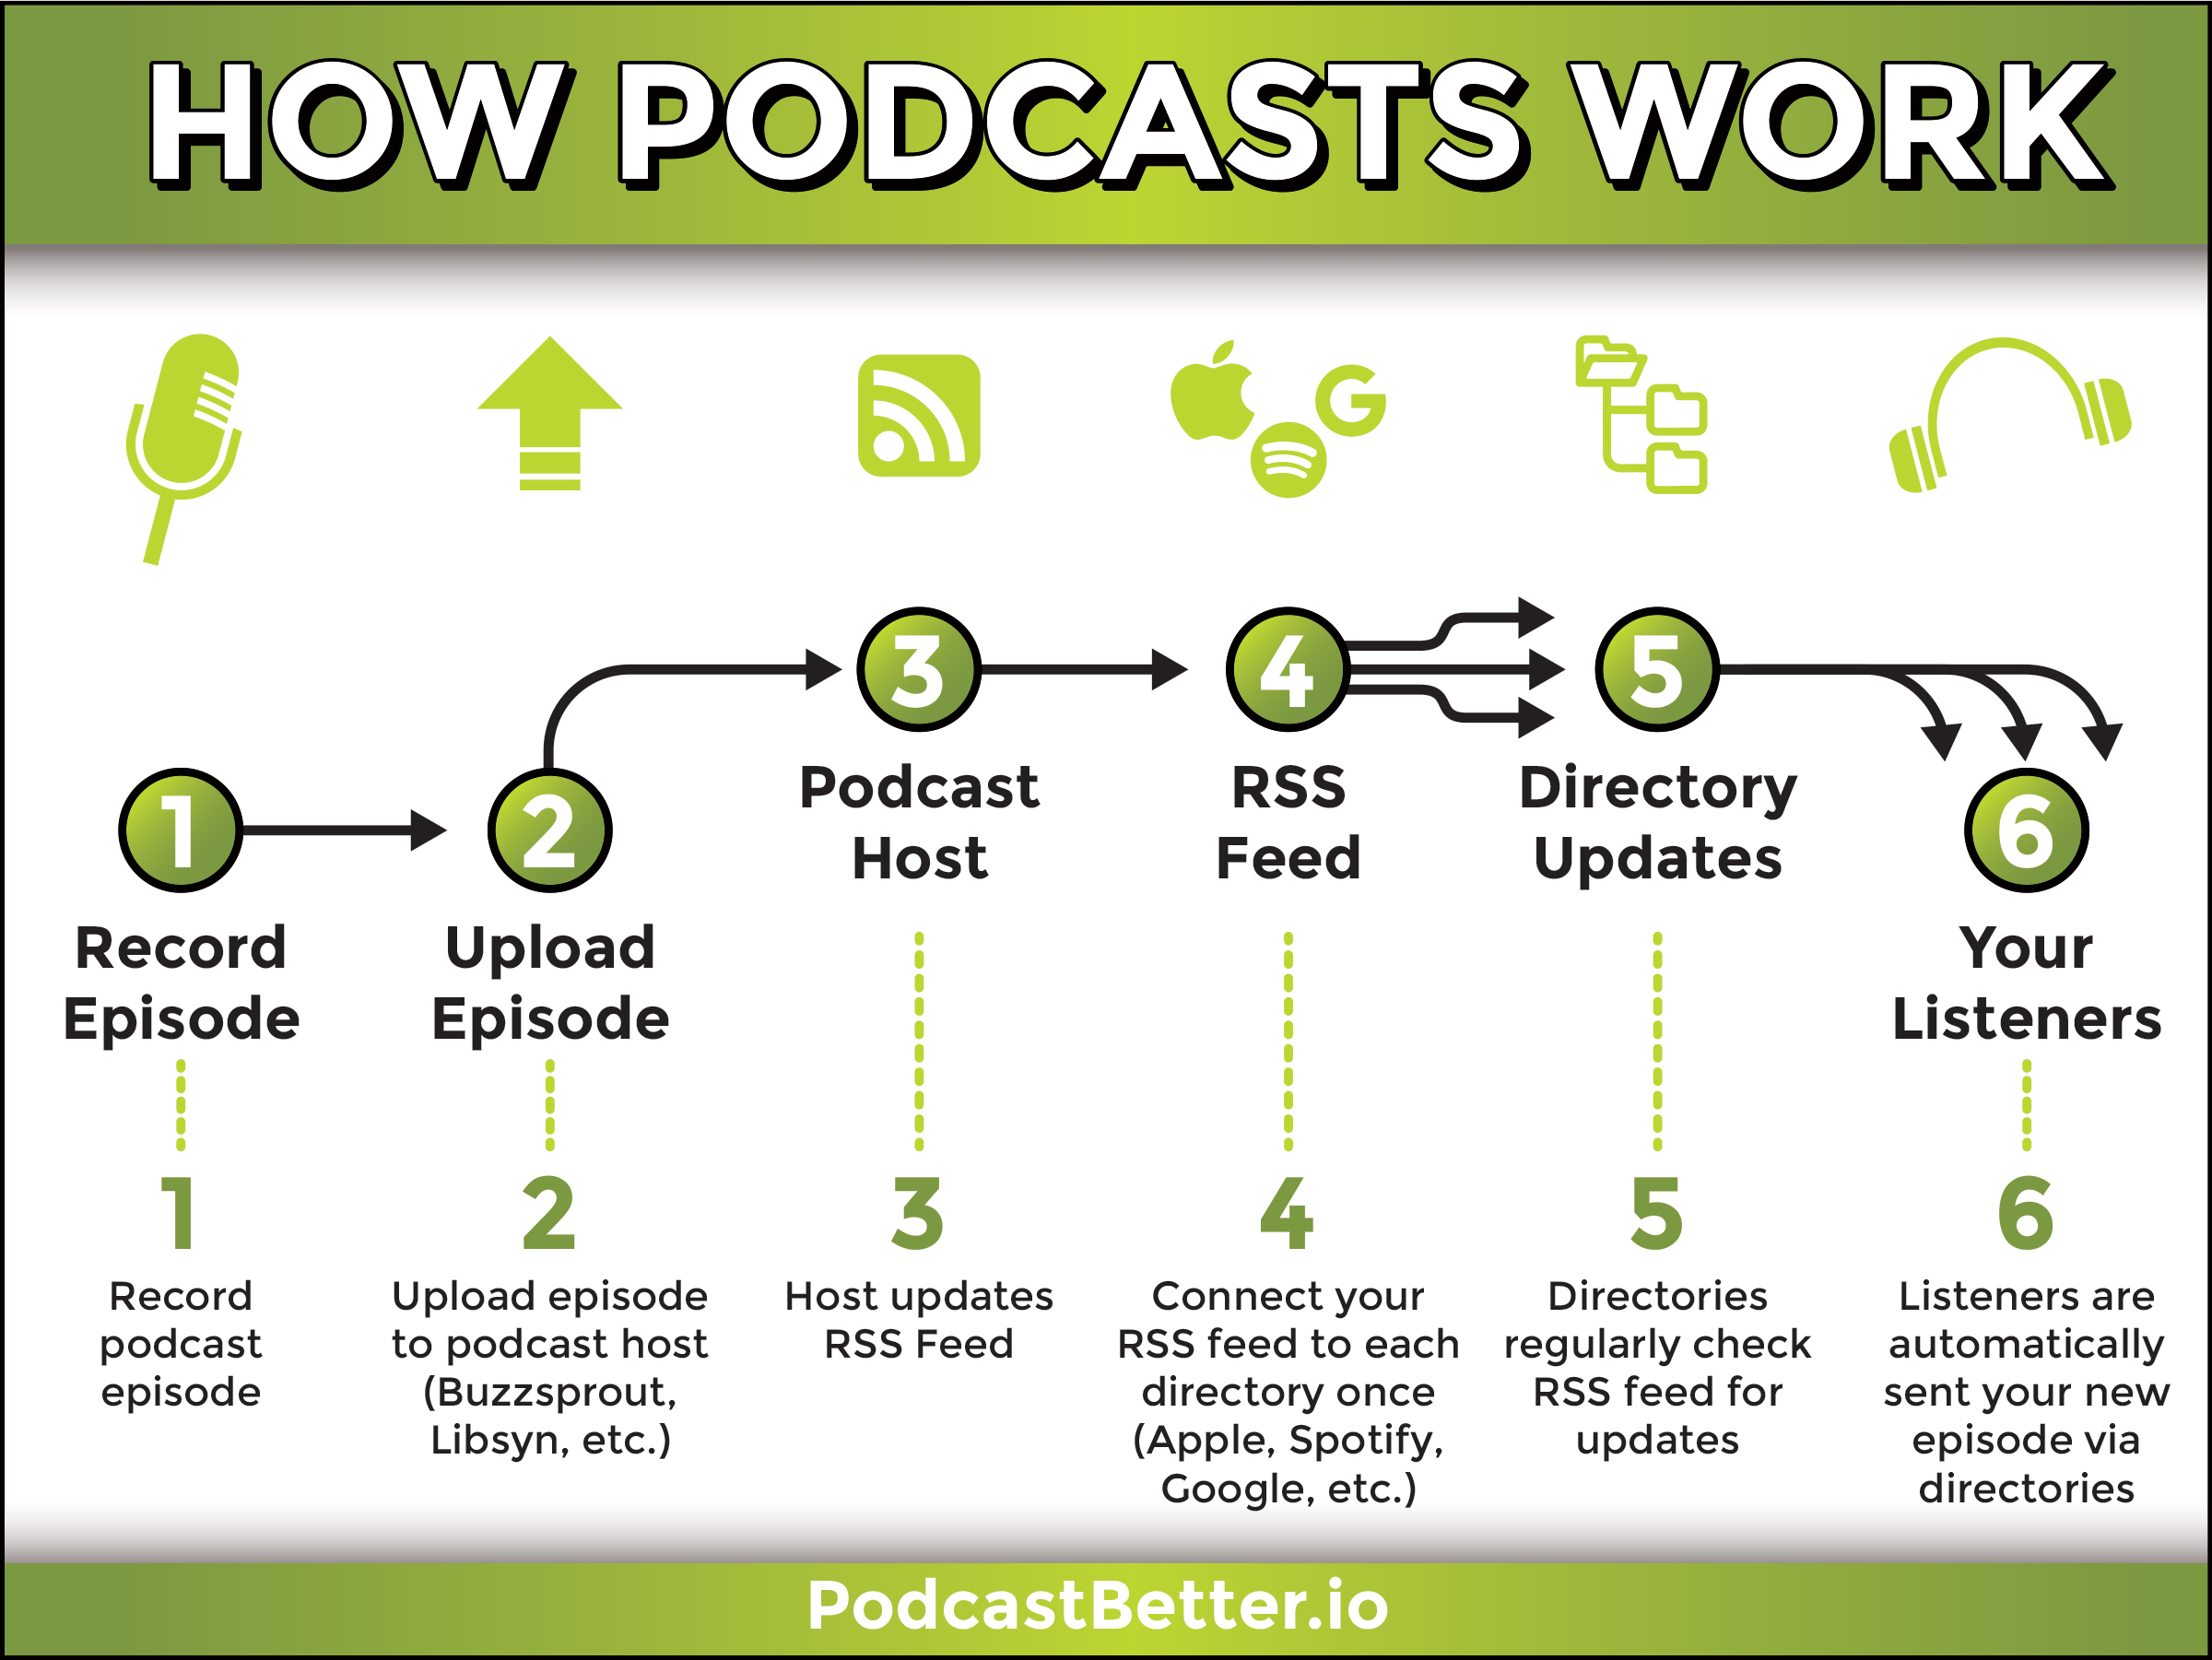 How Podcasts Work